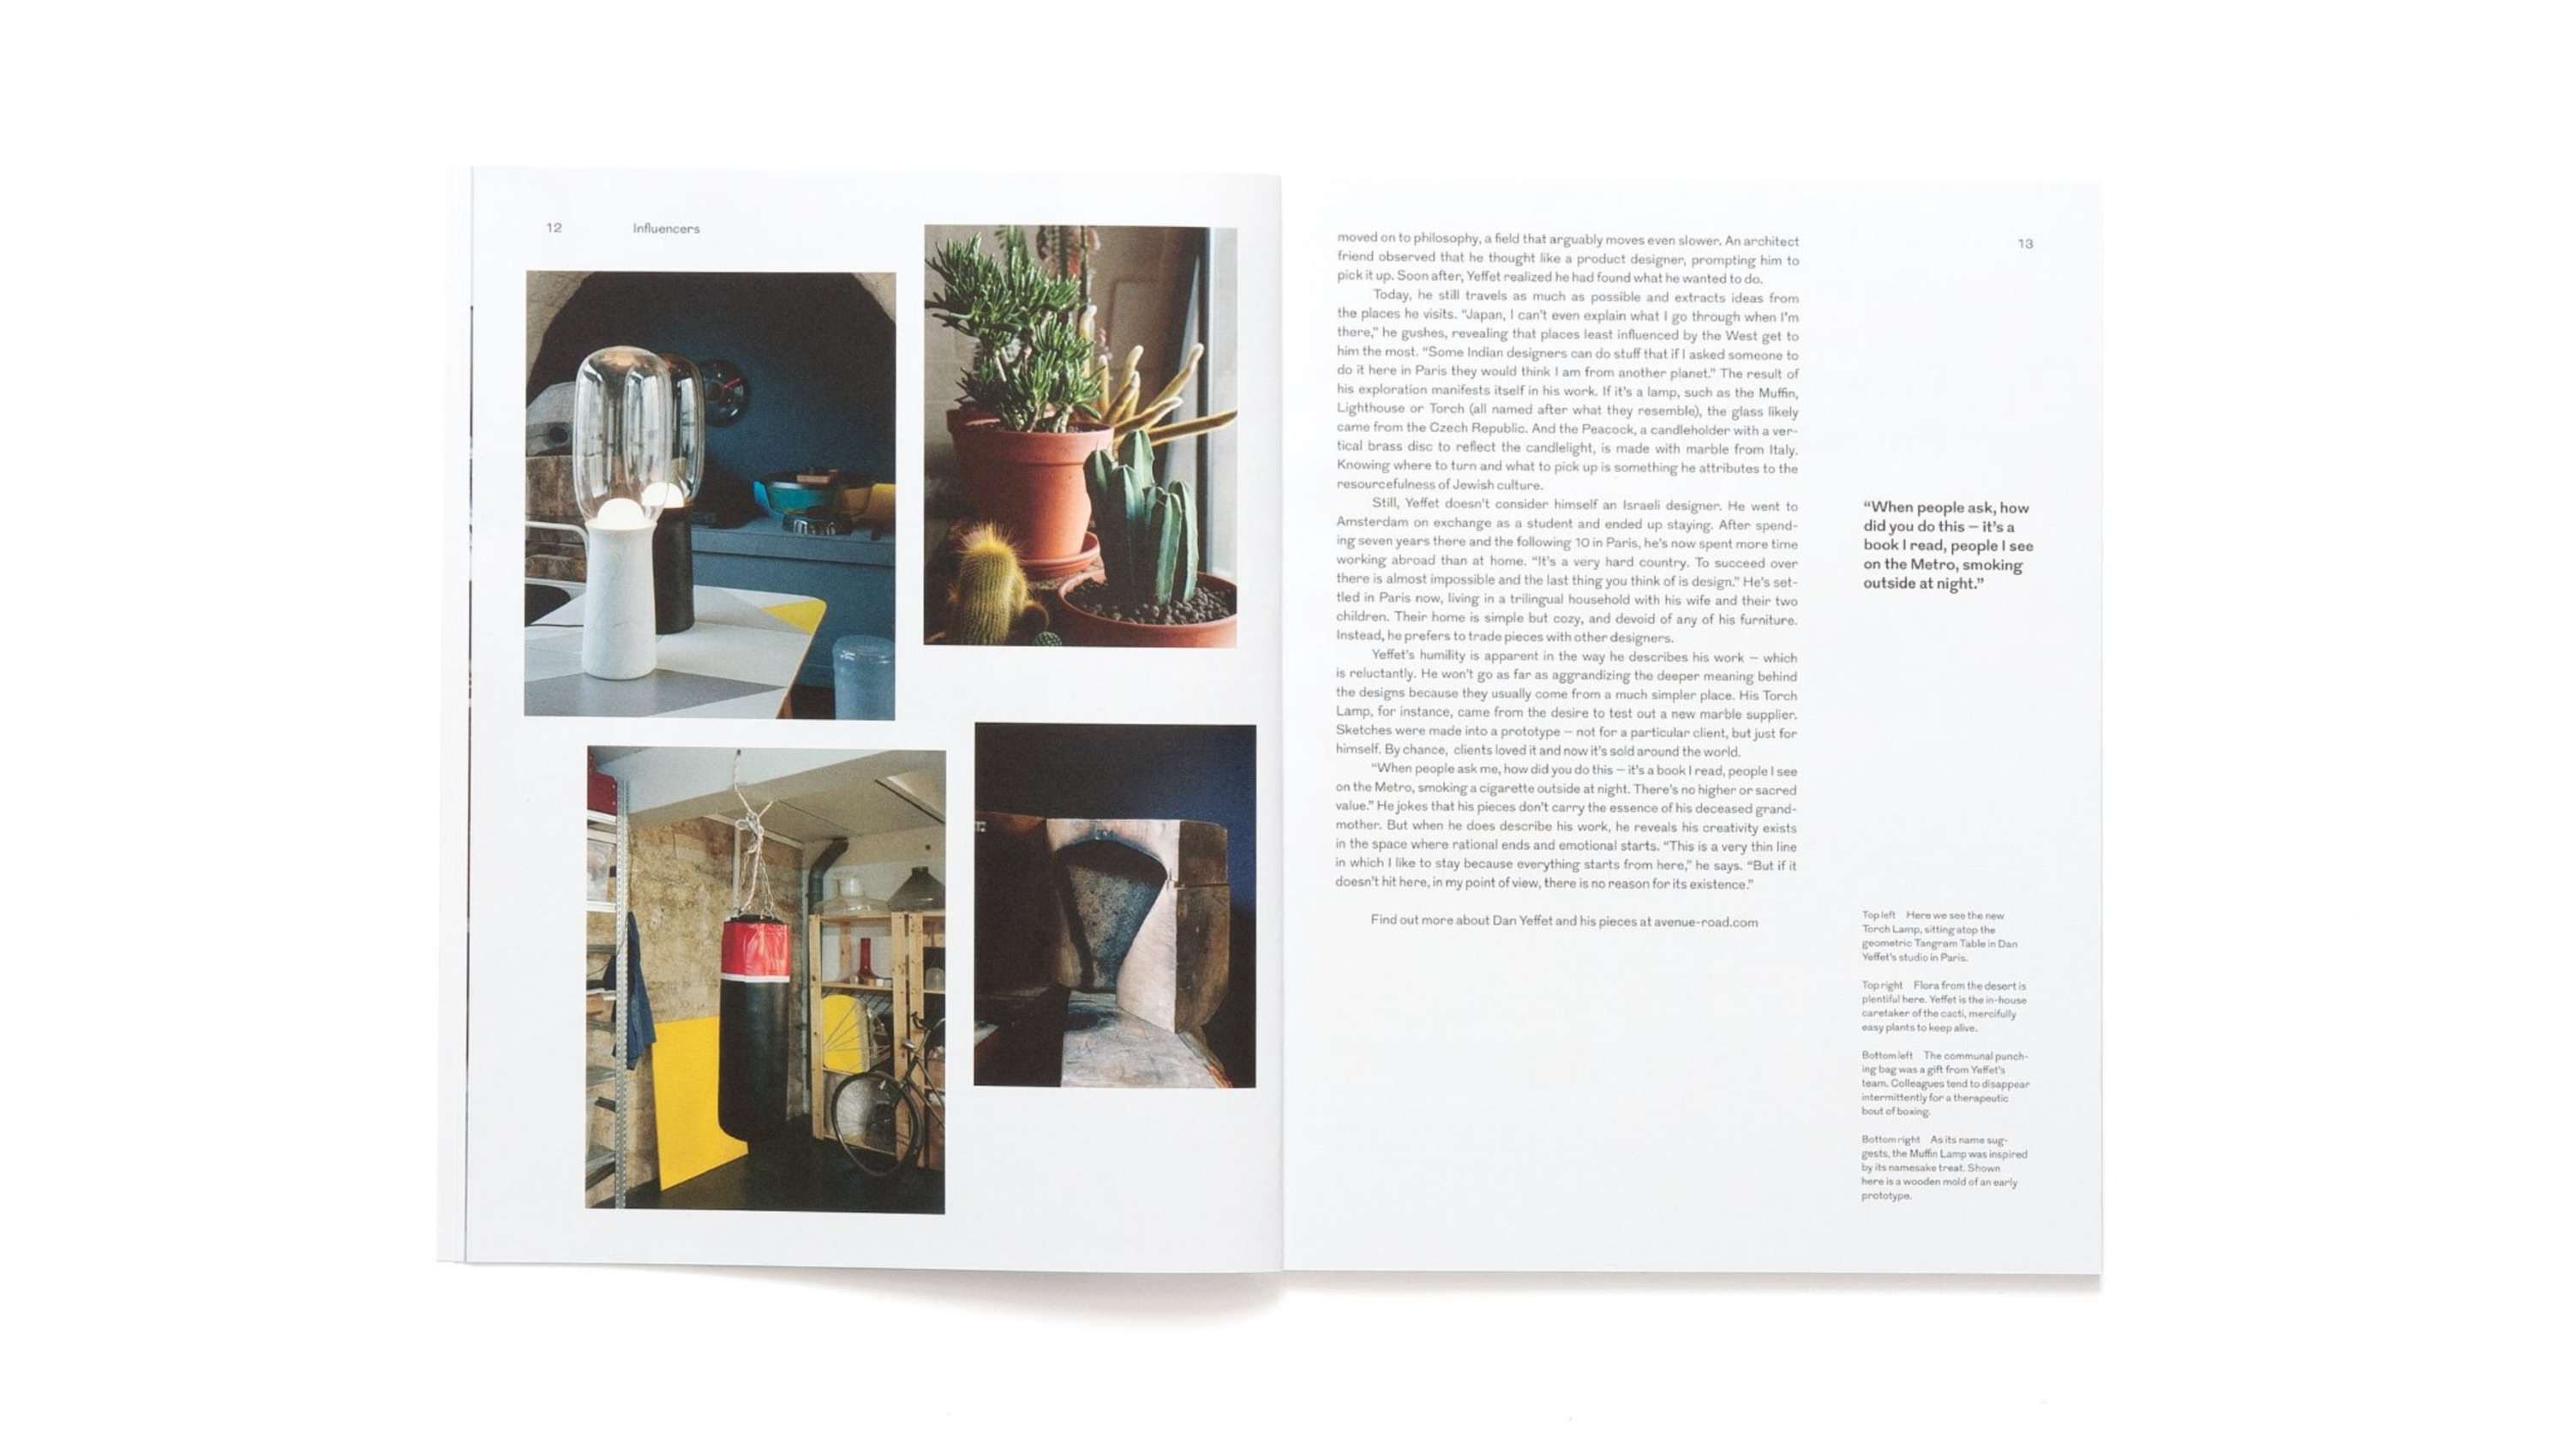 A Special History Section In The Book Used Graphic Novel Approach To Tell Story Of Lobmeyr And Modernist Designer Carl Aubck